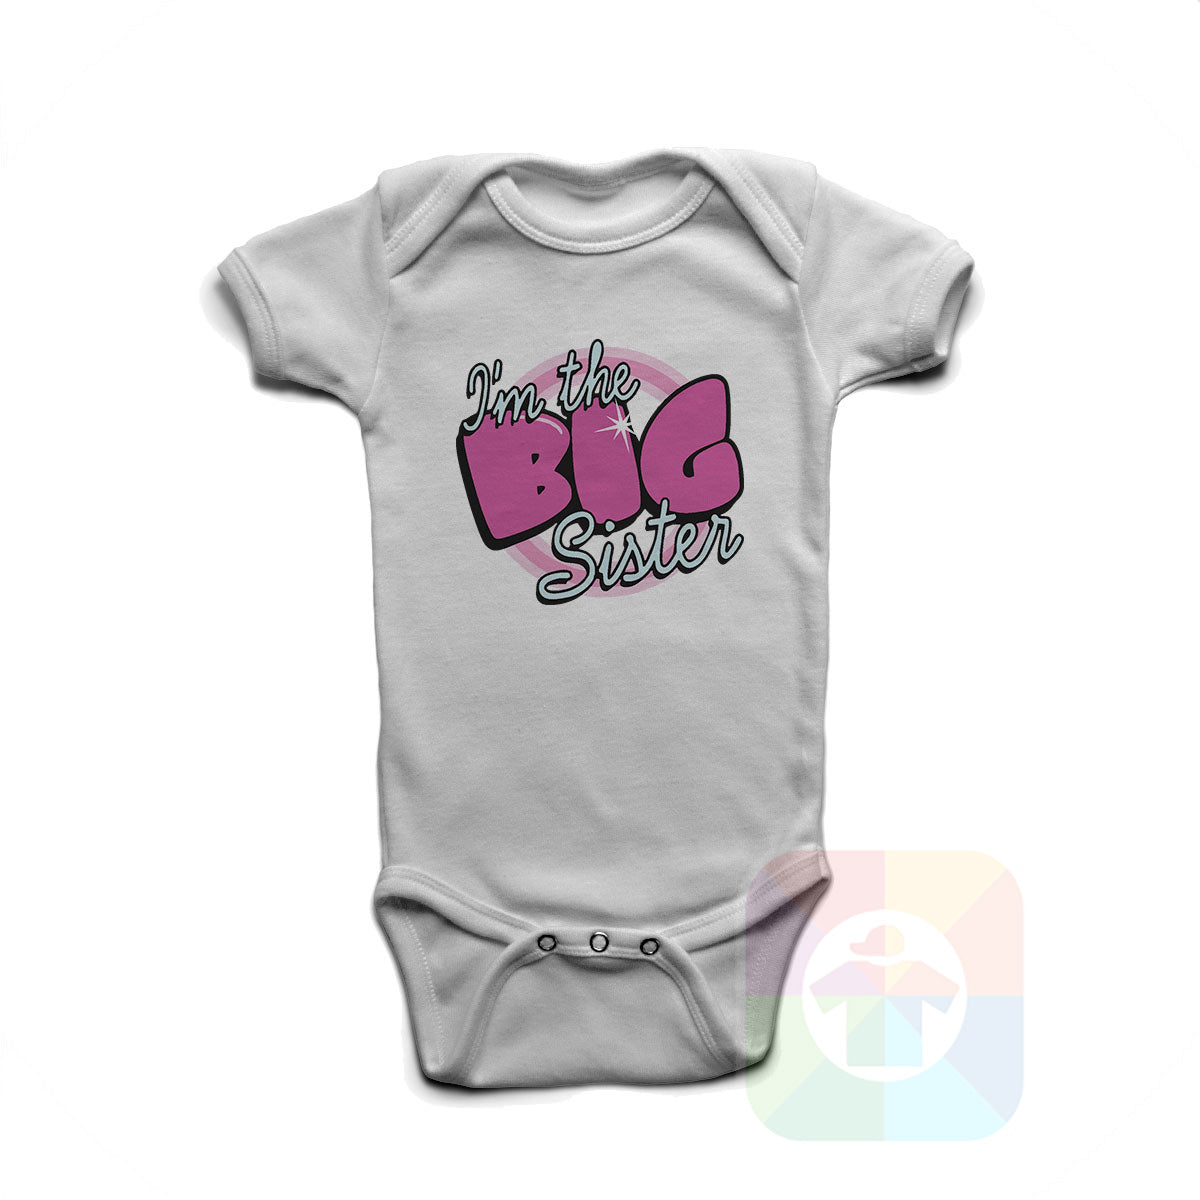 A WHITE Baby Onesie with the  ' Baby onesie 'I AM THE BIG SISTER' kids funny novelty design. #8133 / New Born, 6m, 12m, 24m Sizes ' design.